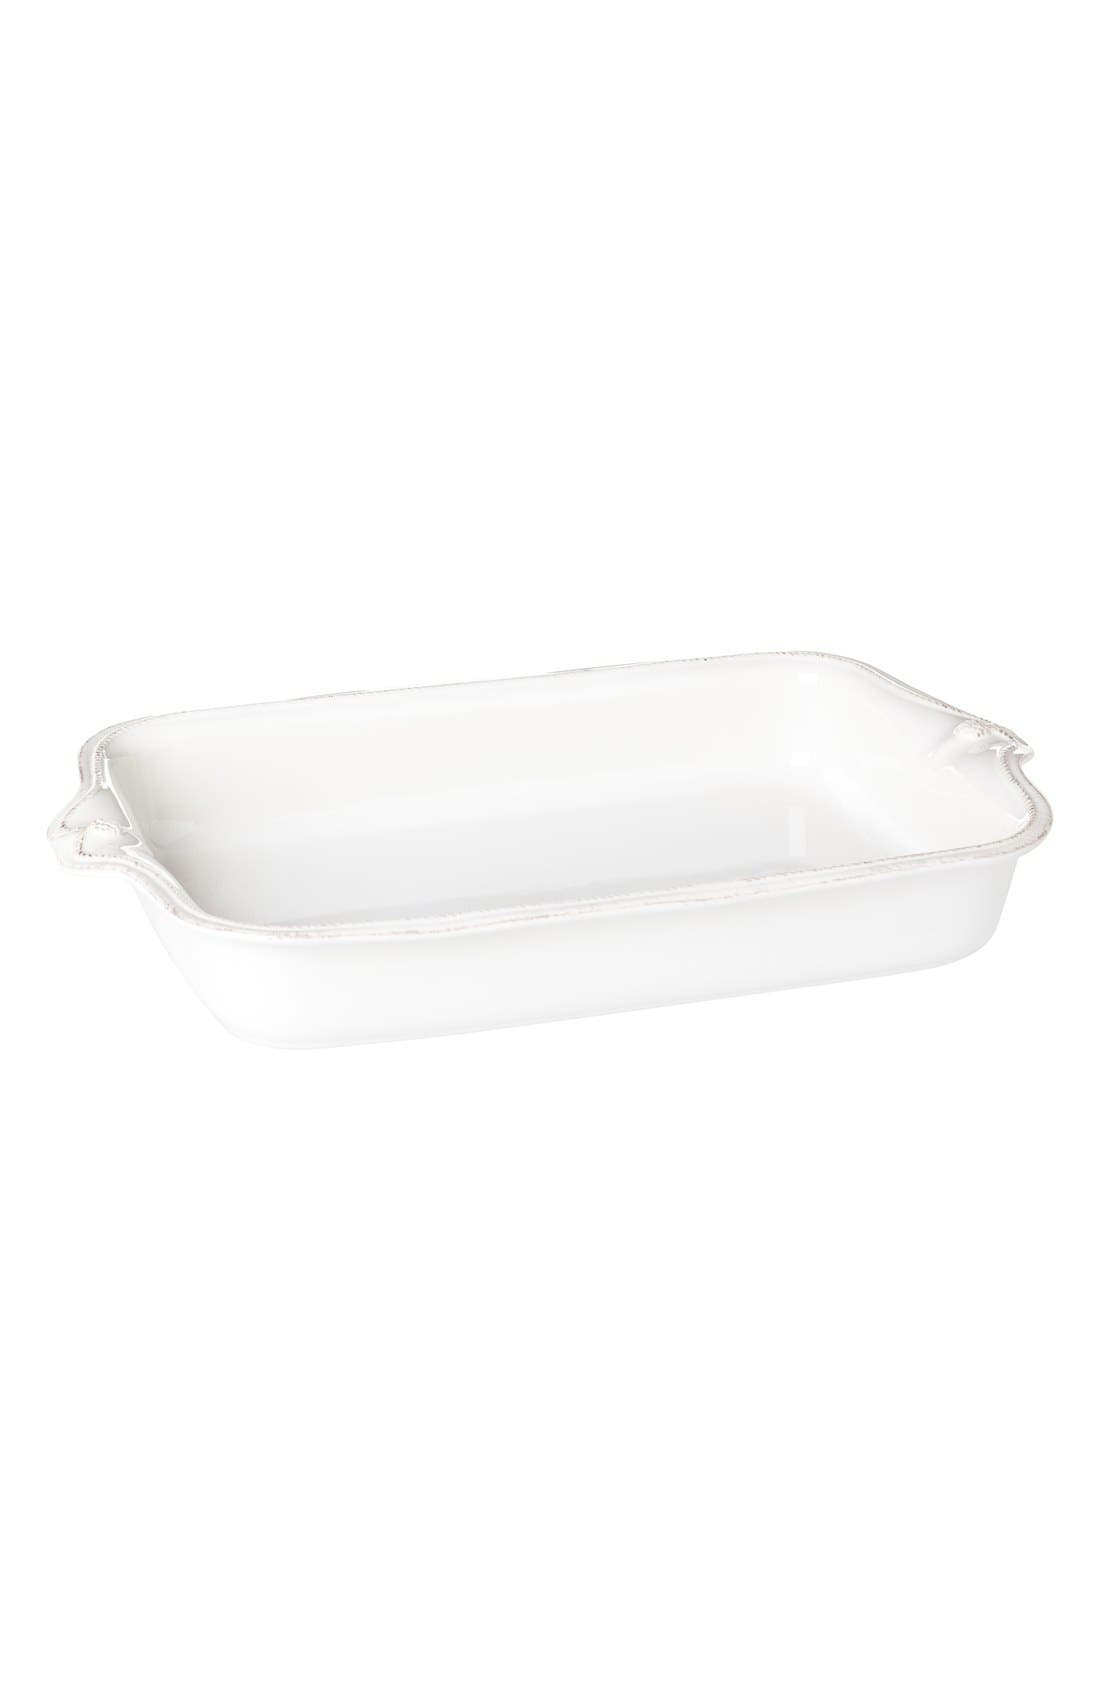 'Berry and Thread' Rectangular Baking Dish,                             Alternate thumbnail 2, color,                             WHITEWASH